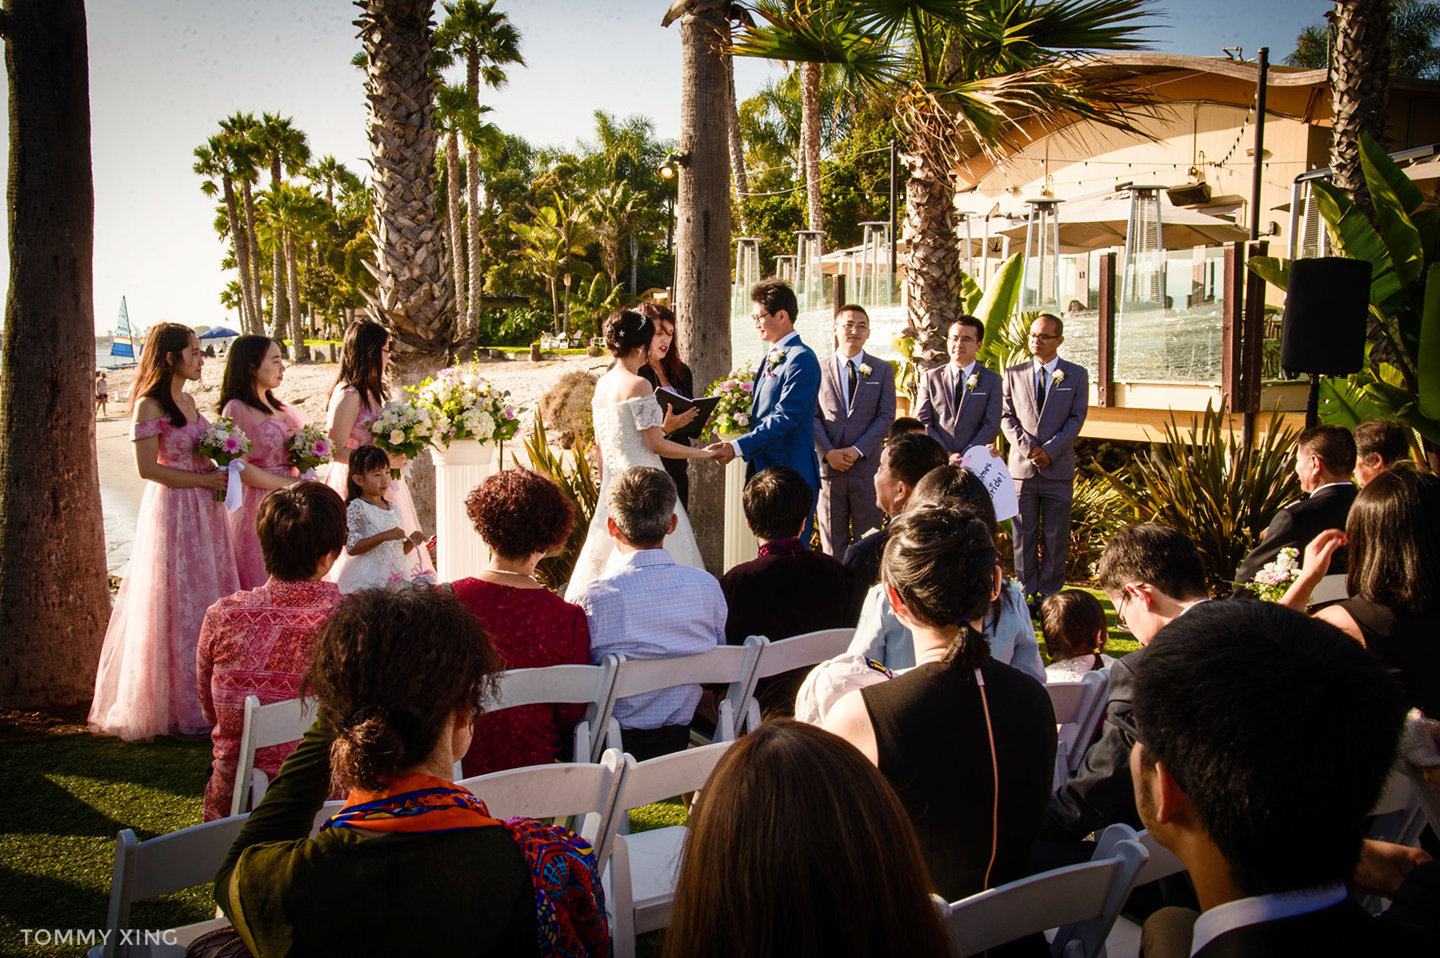 Paradise Point Resort Wedding Xiaolu & Bin San Diego 圣地亚哥婚礼摄影跟拍 Tommy Xing Photography 洛杉矶婚礼婚纱照摄影师 134.jpg